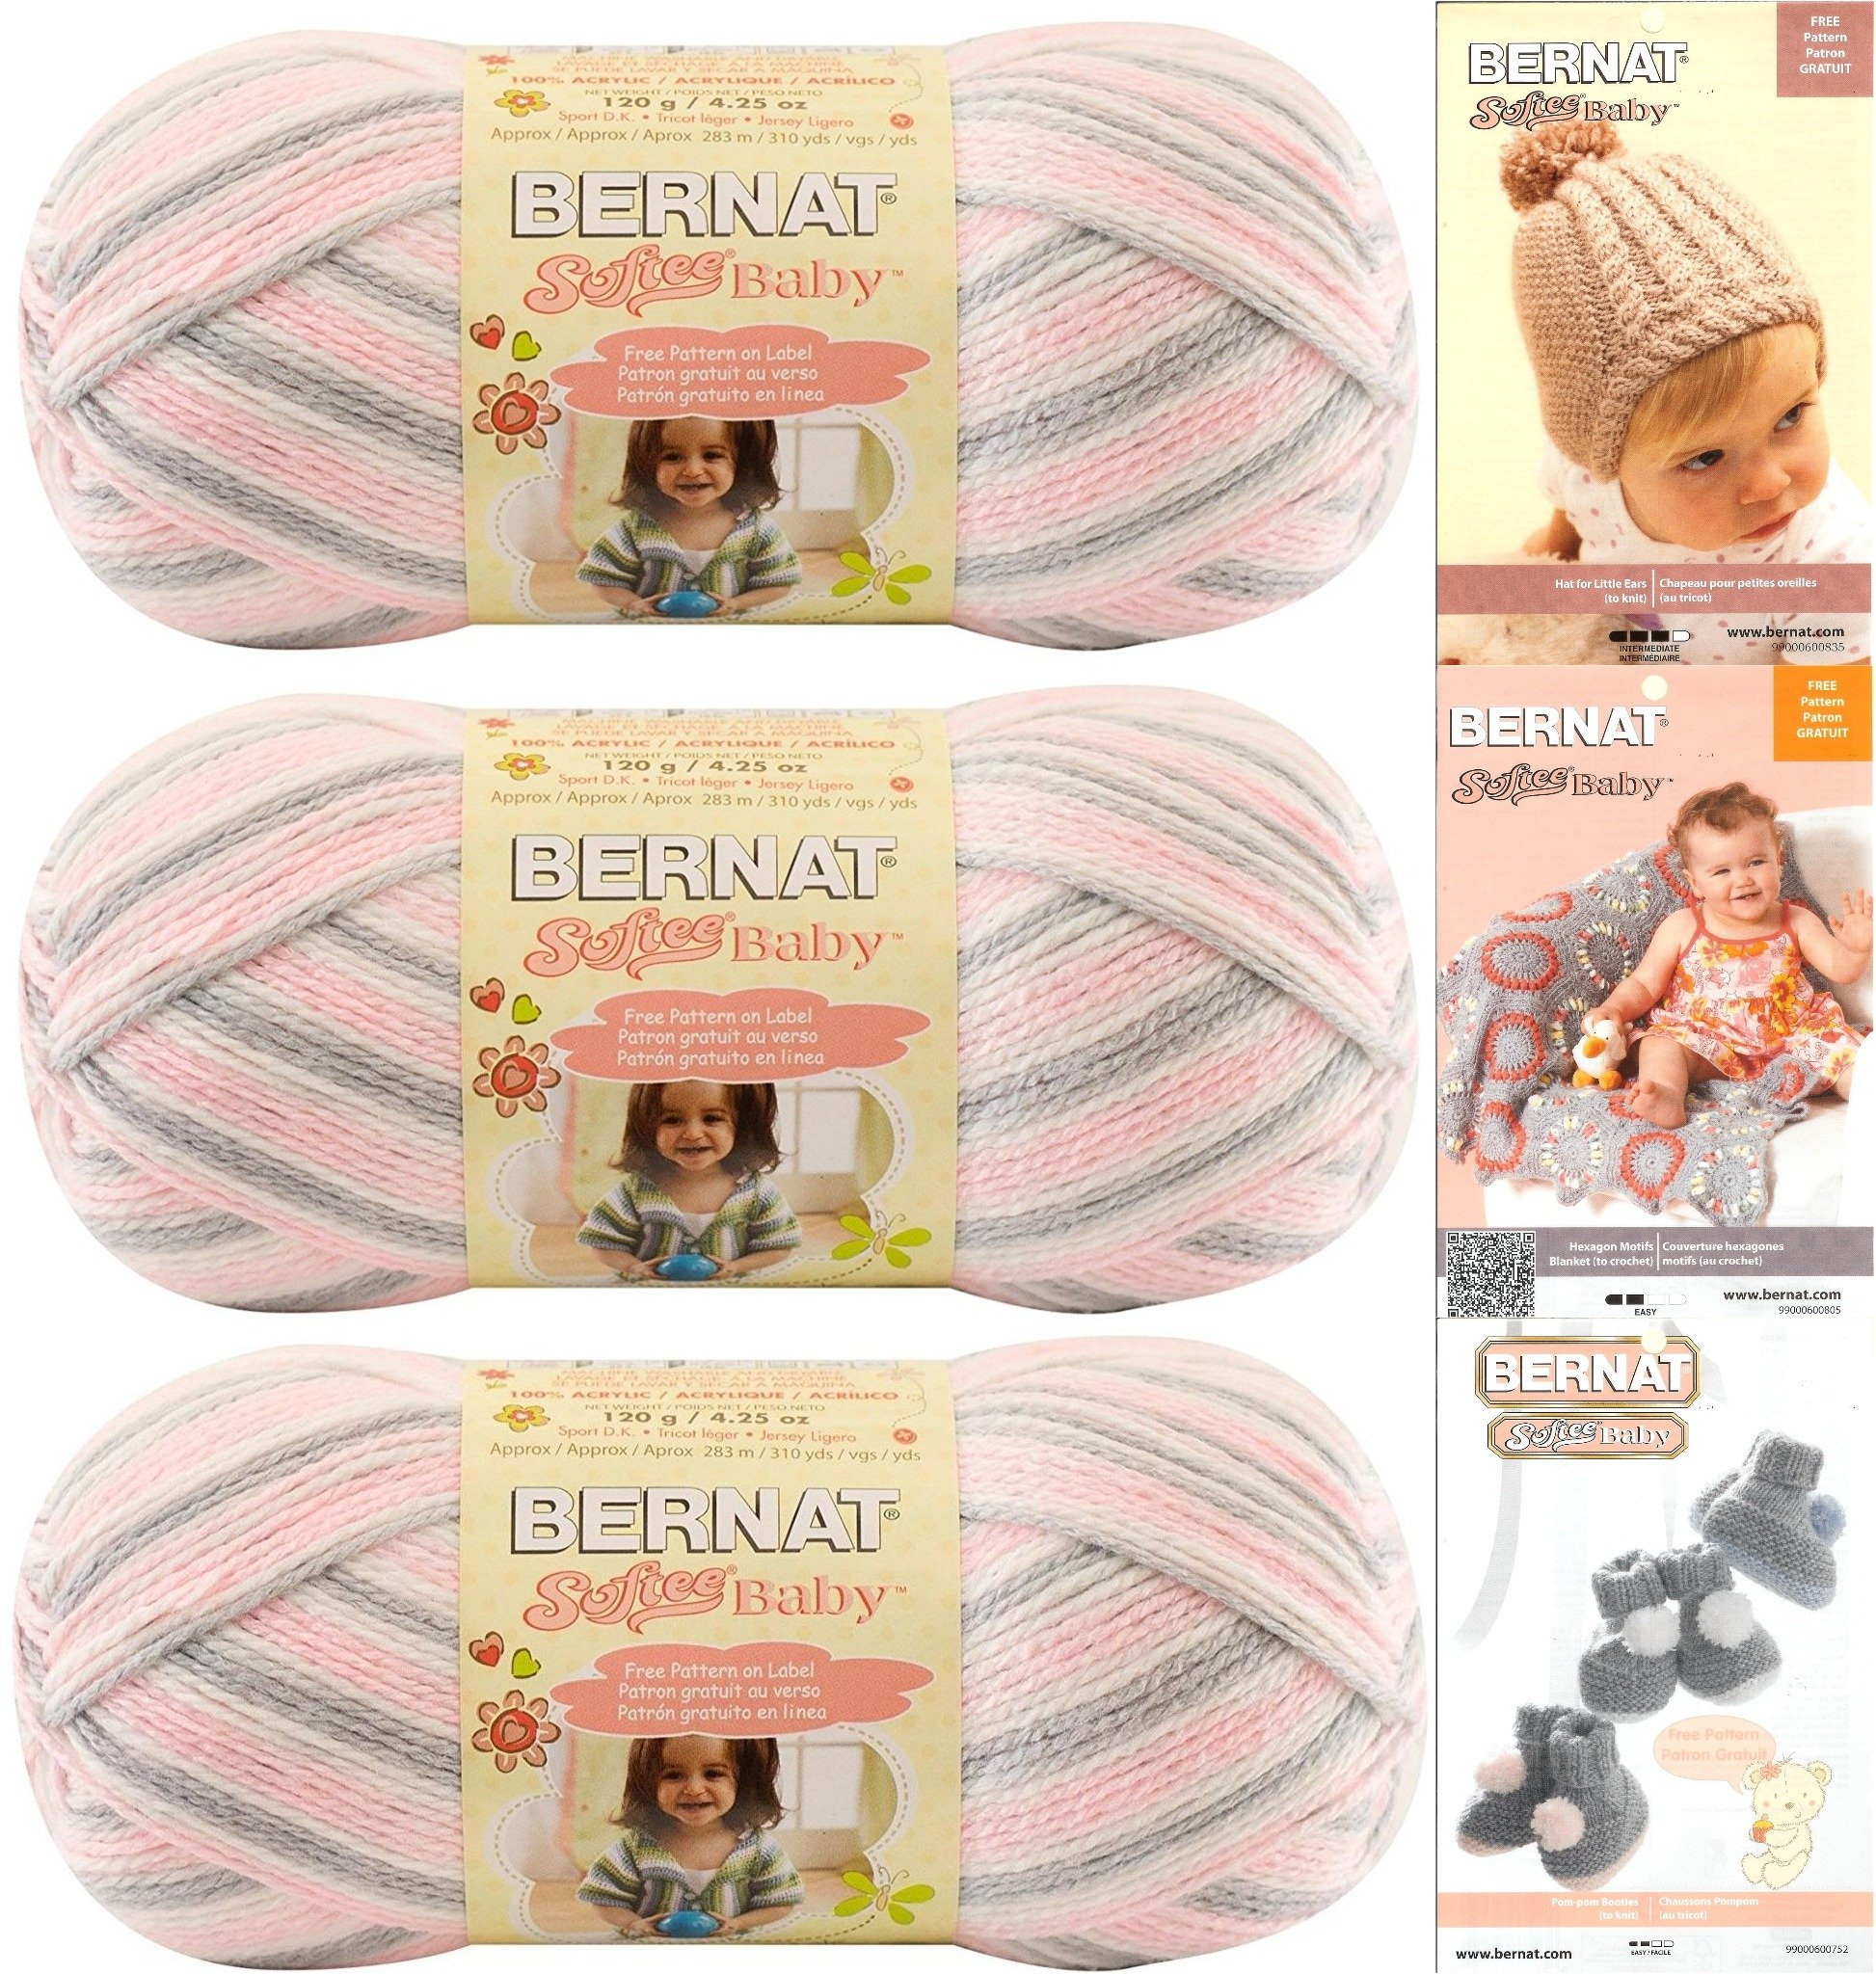 Bernat Softee Baby Yarn 3-Pack Pink Flannel Bundle Includes 3 Patterns Pink Gray White by Bernat (Image #1)